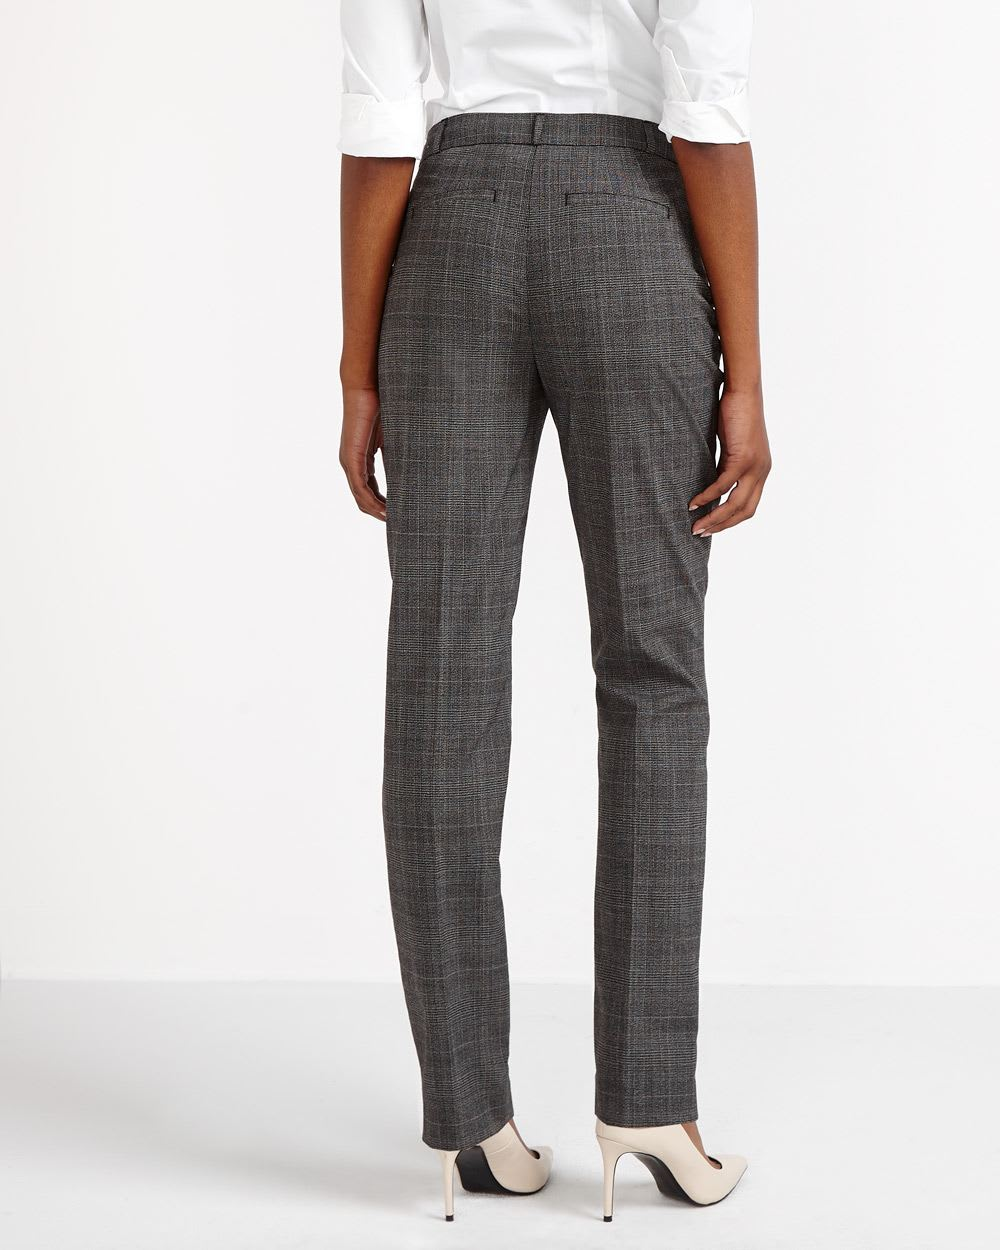 The Tall New Classic Plaid Pants